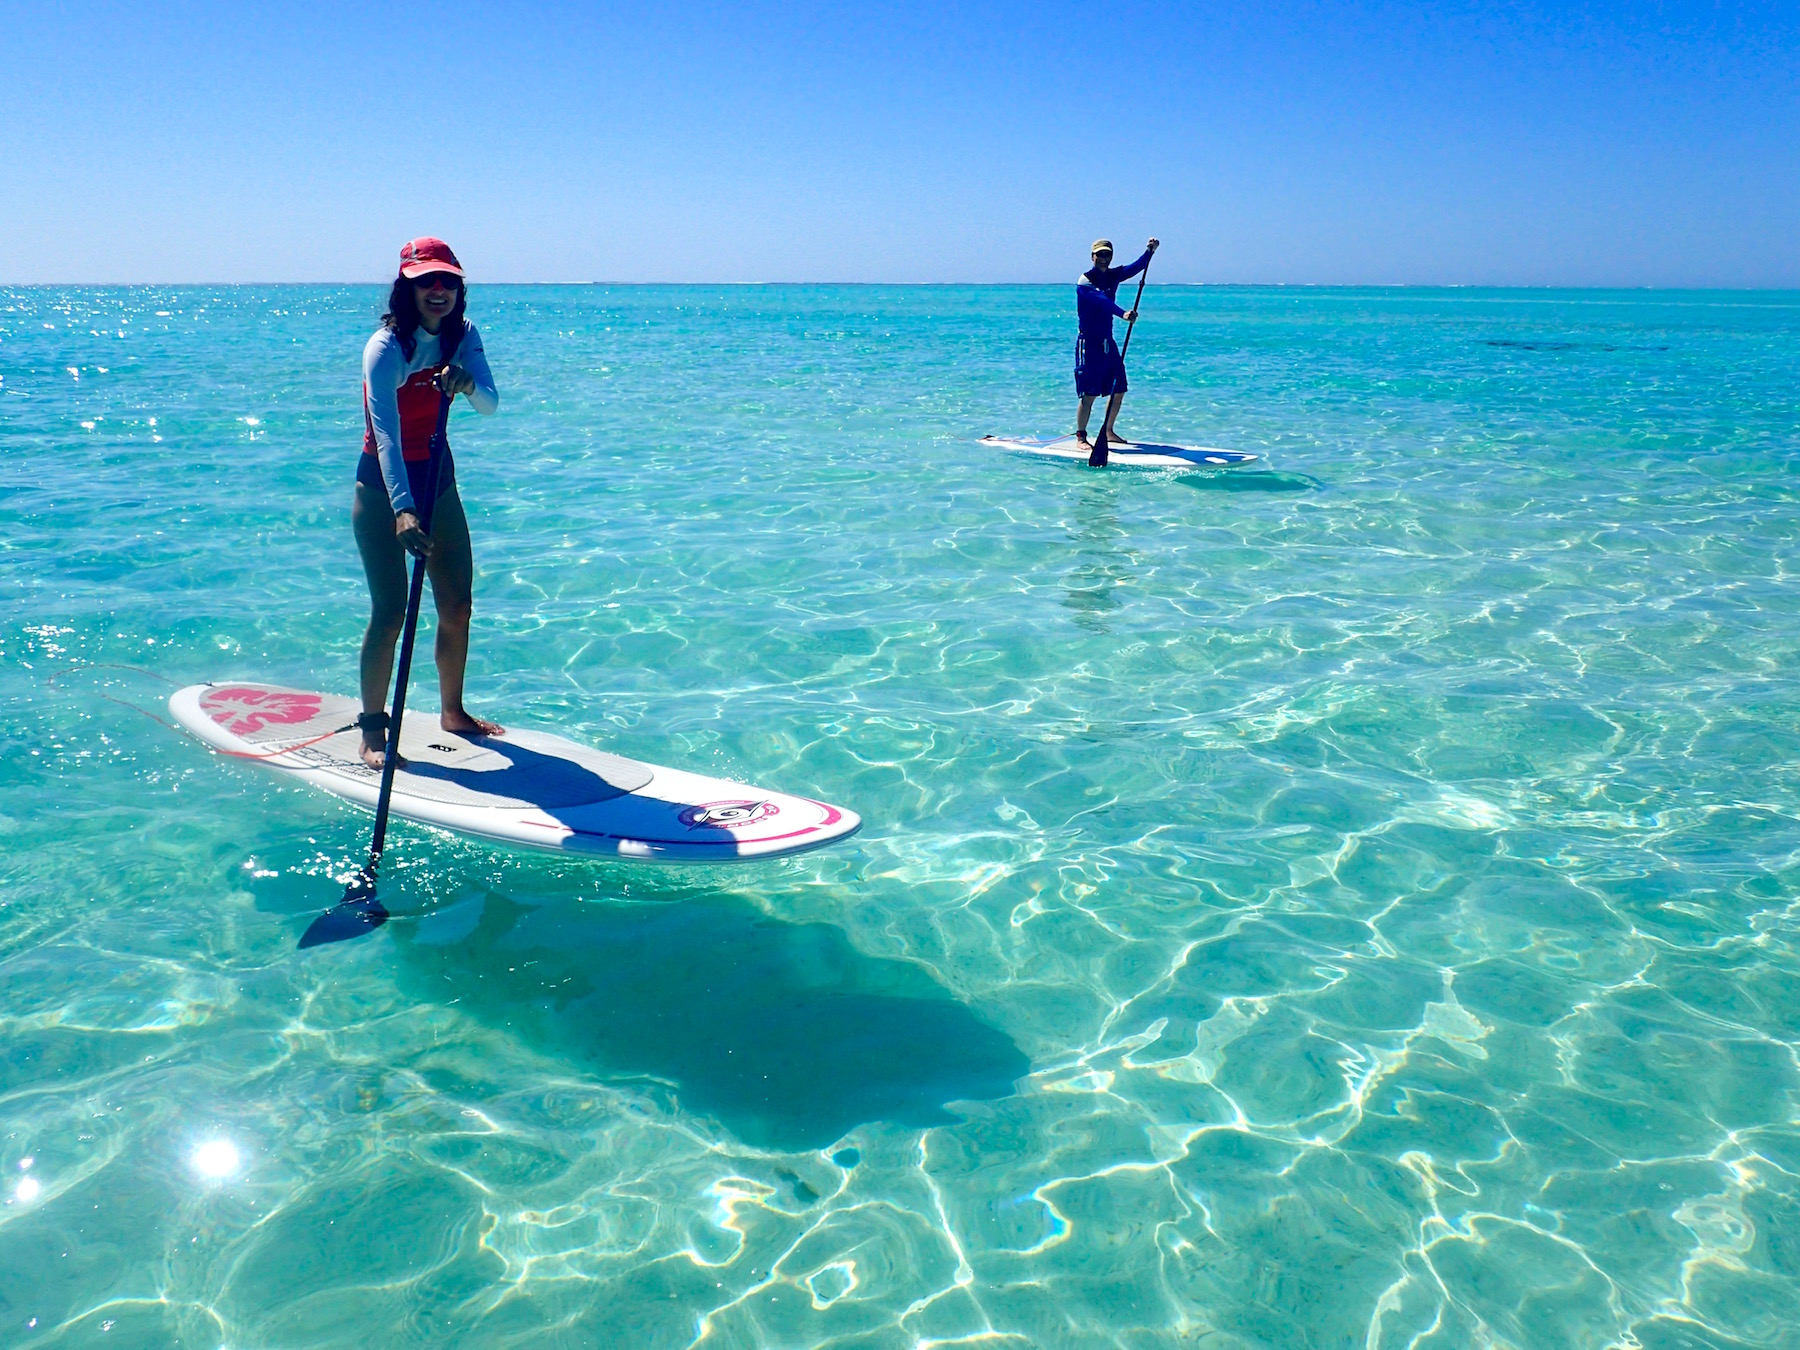 Big Day Out, Sea kayak, snorkel, stand up paddle, stand up paddle board, SUP, Ningaloo Reef, Ningaloo, Exmouth, Western Australia, Exmouth Adventure Co, Coral Coast, Cape Range National Park, SUP Lesson, SUP tour